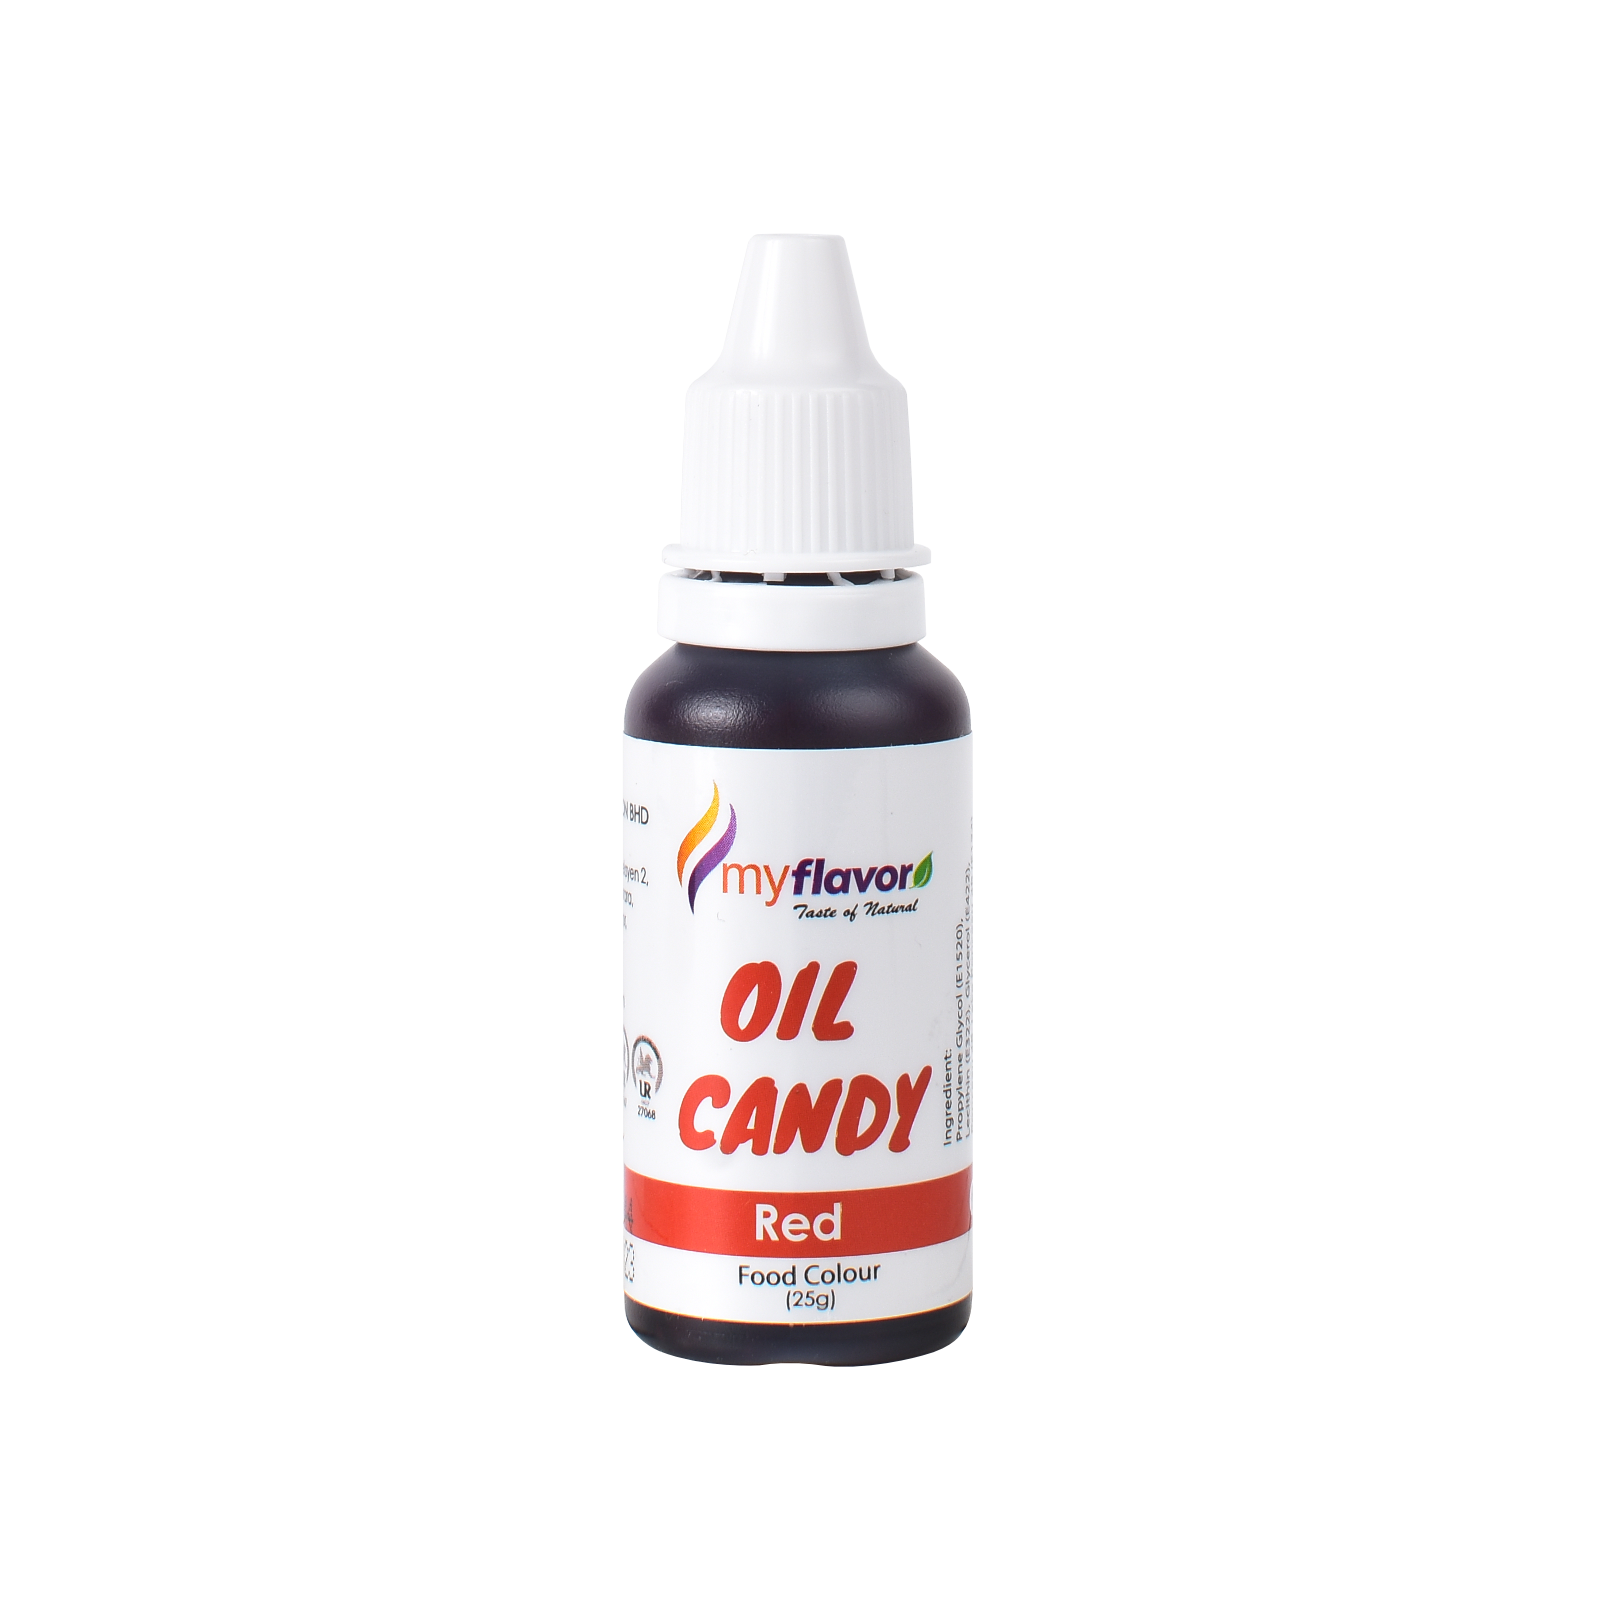 My Flavor Red Oil Candy Food Colour 25g.png